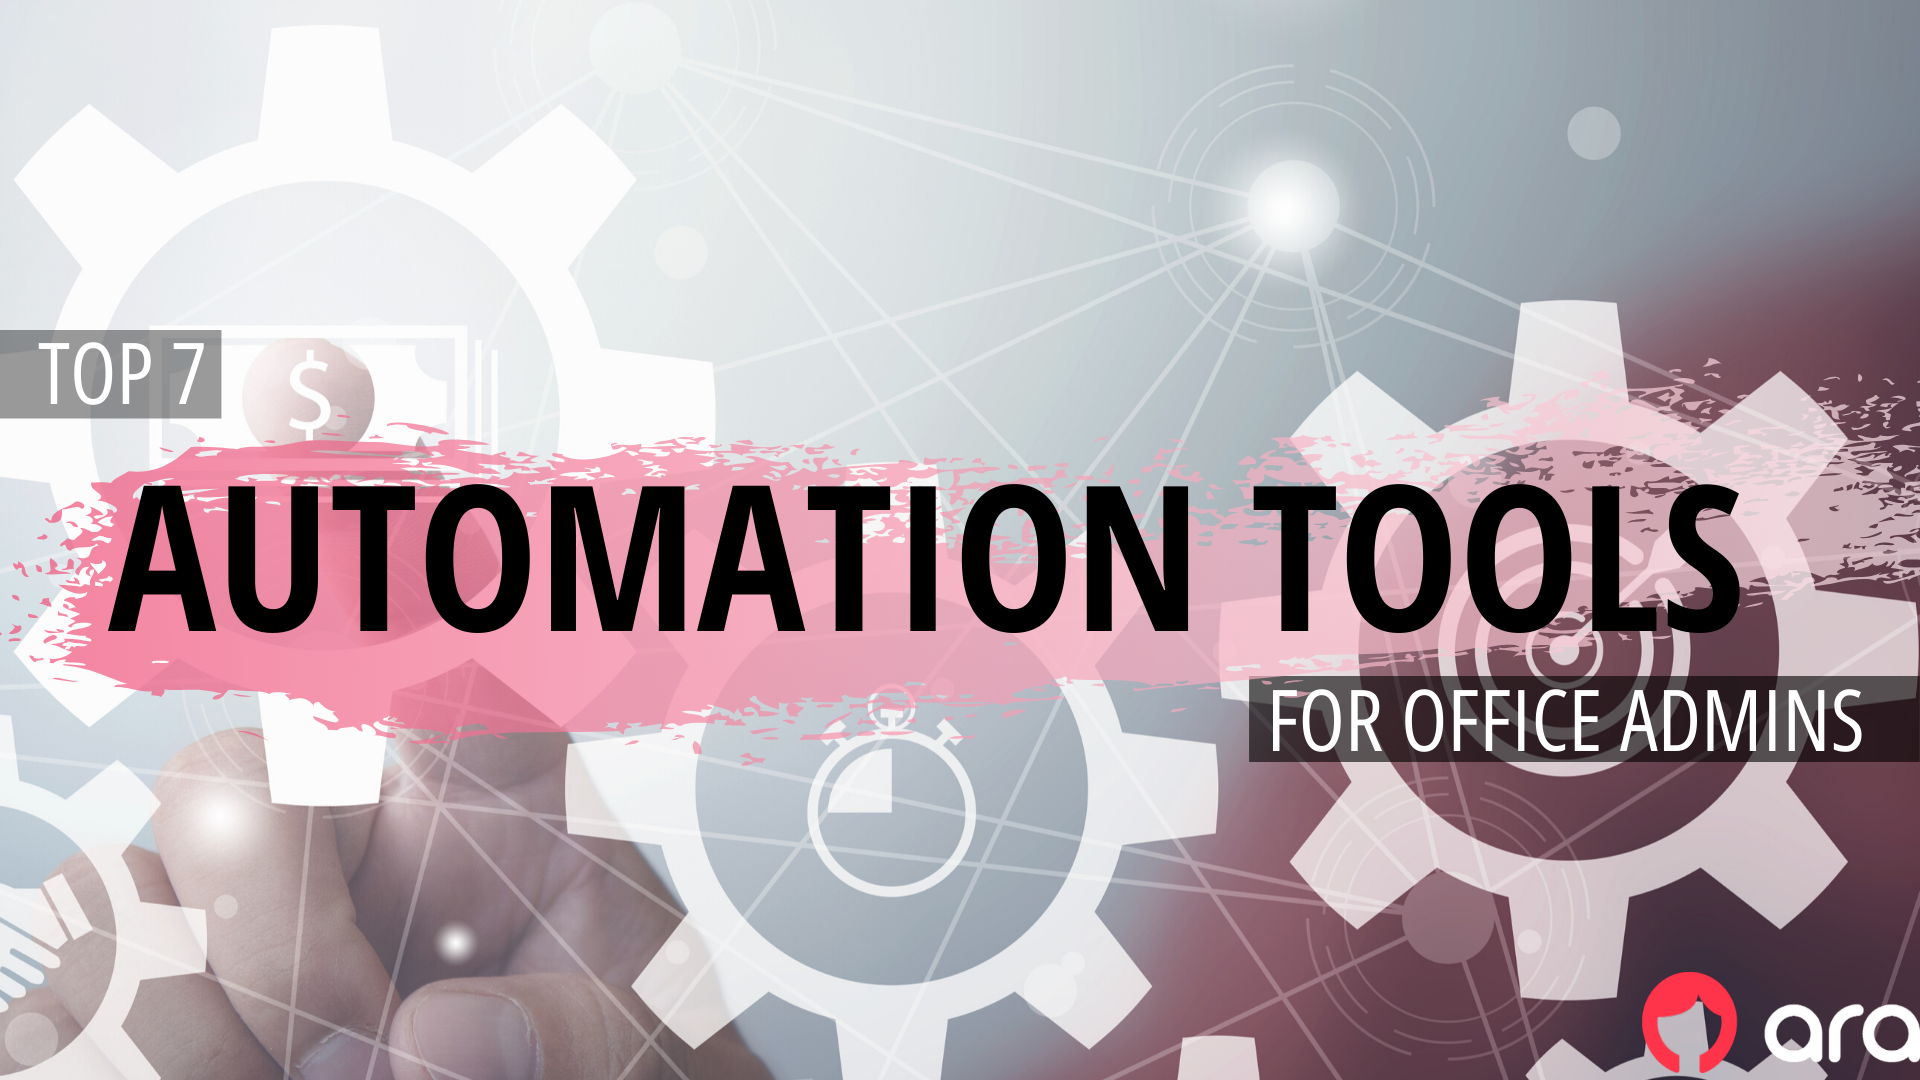 Top 7 Automation Tools for Office Admins